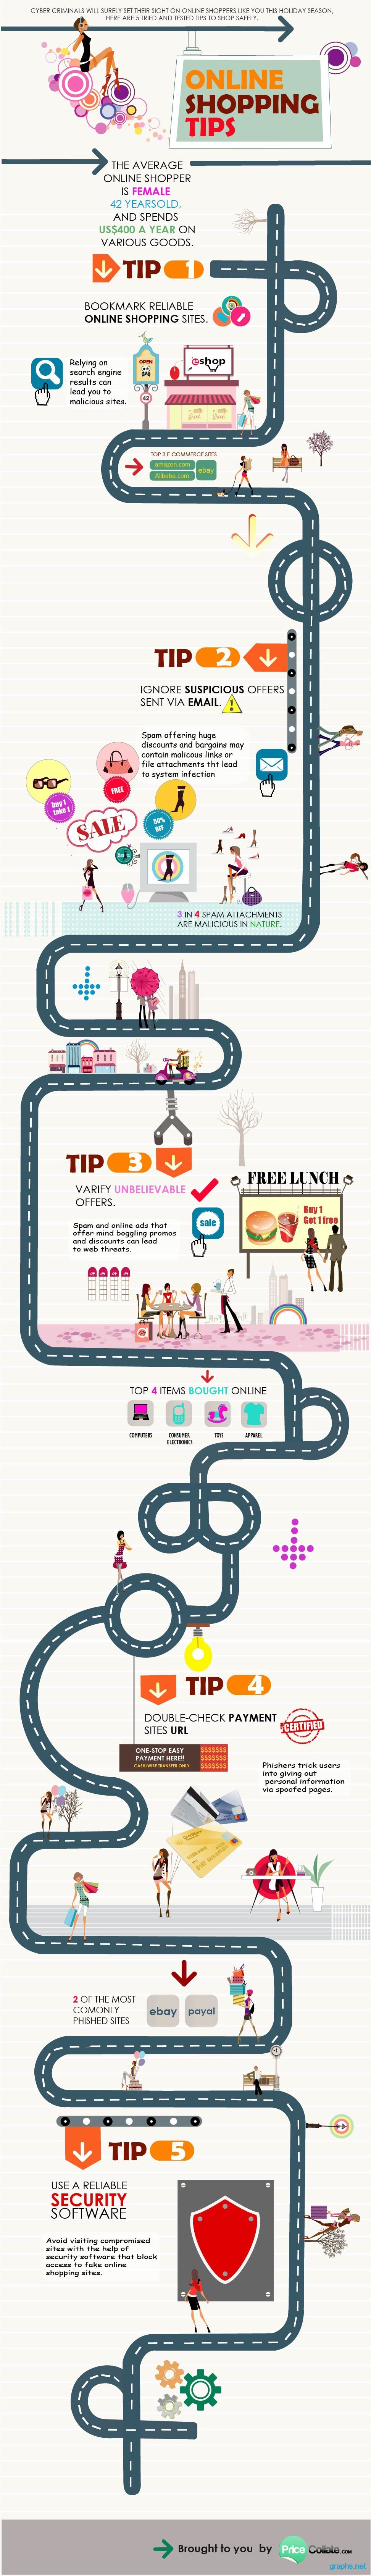 Top 5 Tips for Shopping Online